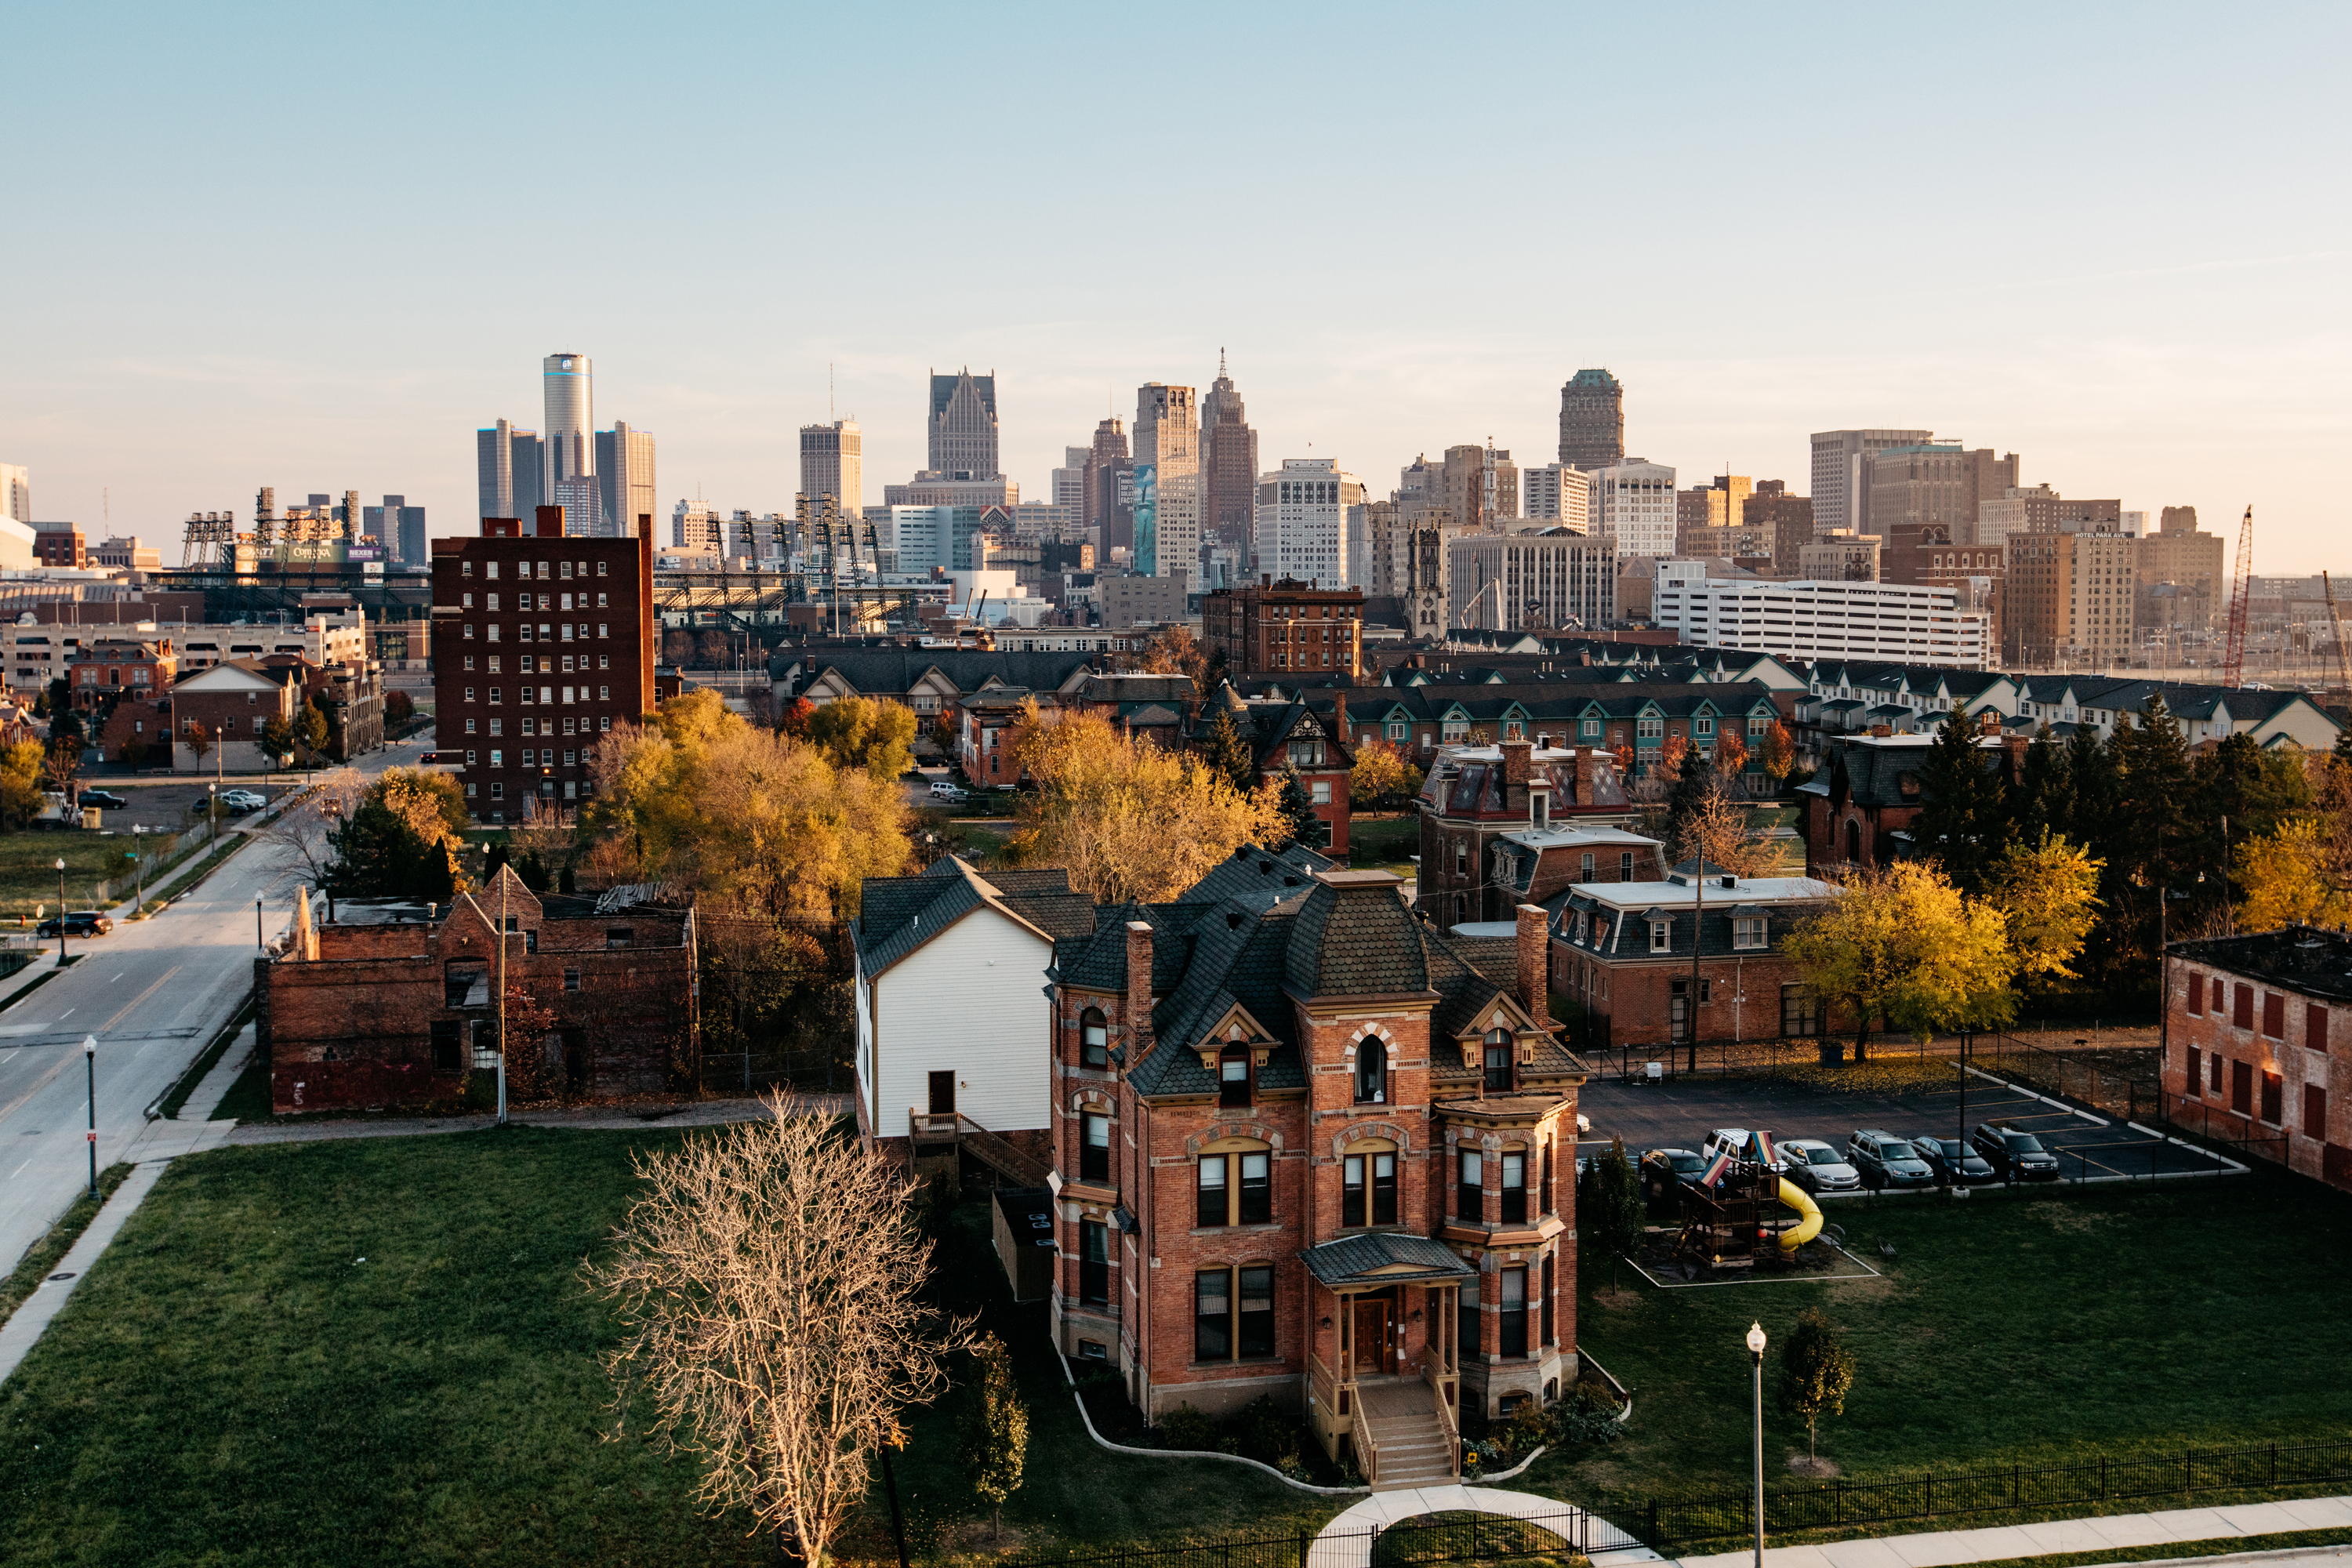 Detroit S Billionaires Hope To Change Downtown With